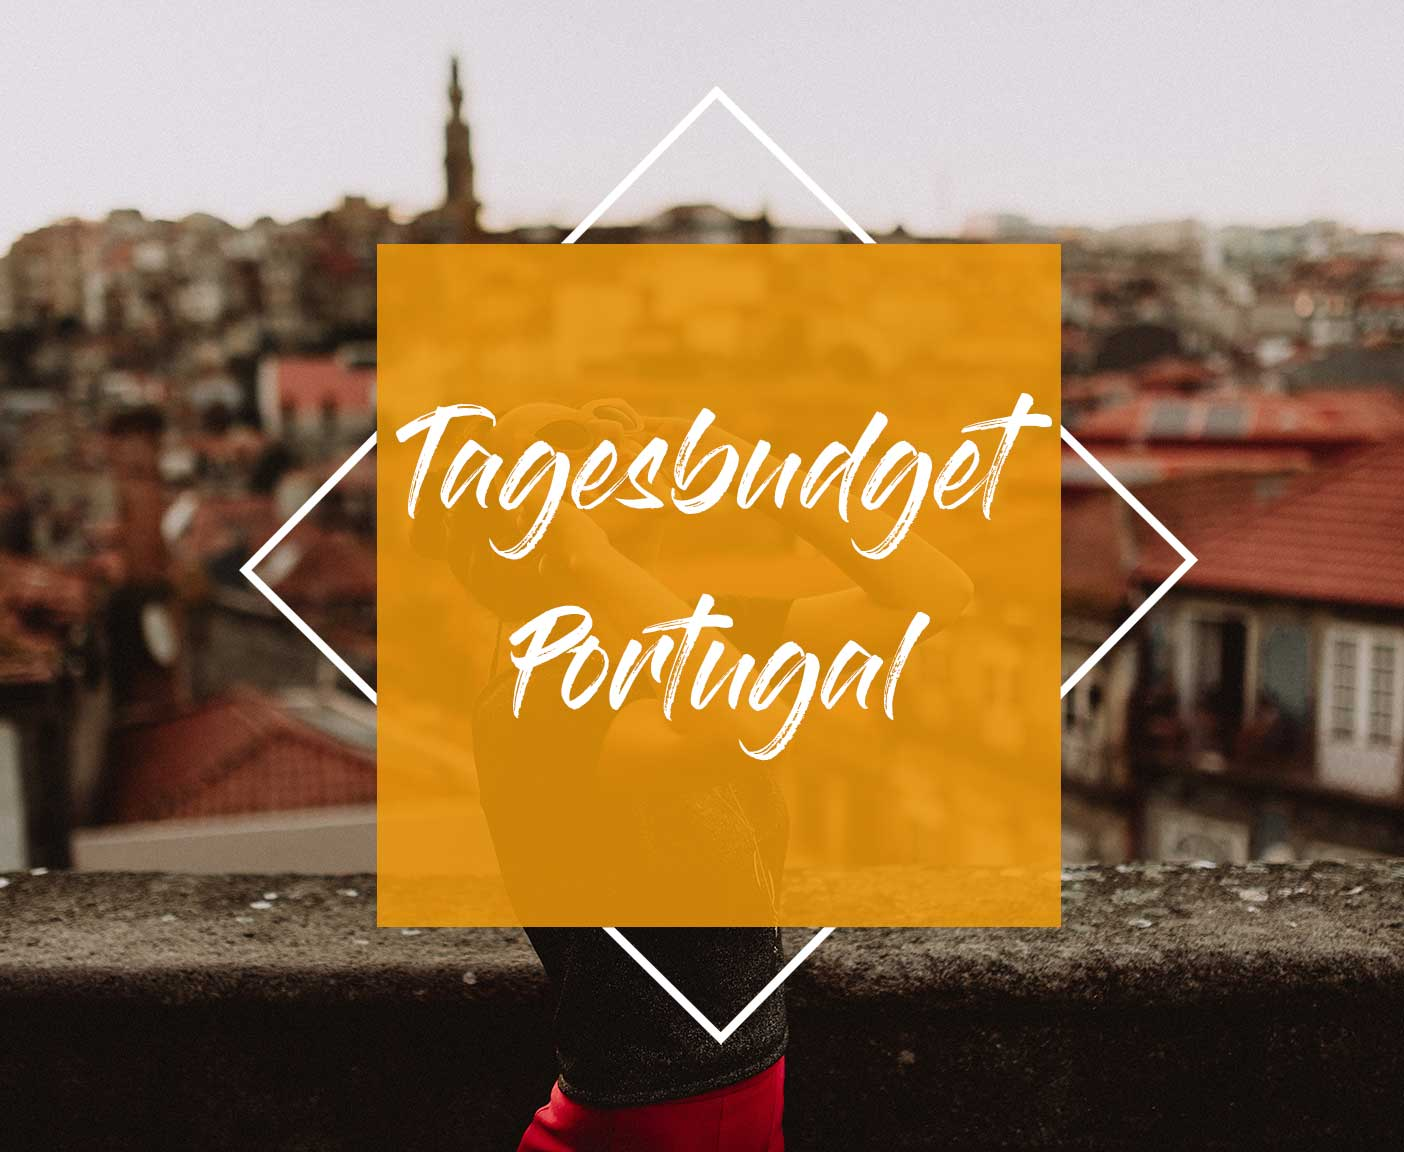 portugal-campingbus-tagesbudget